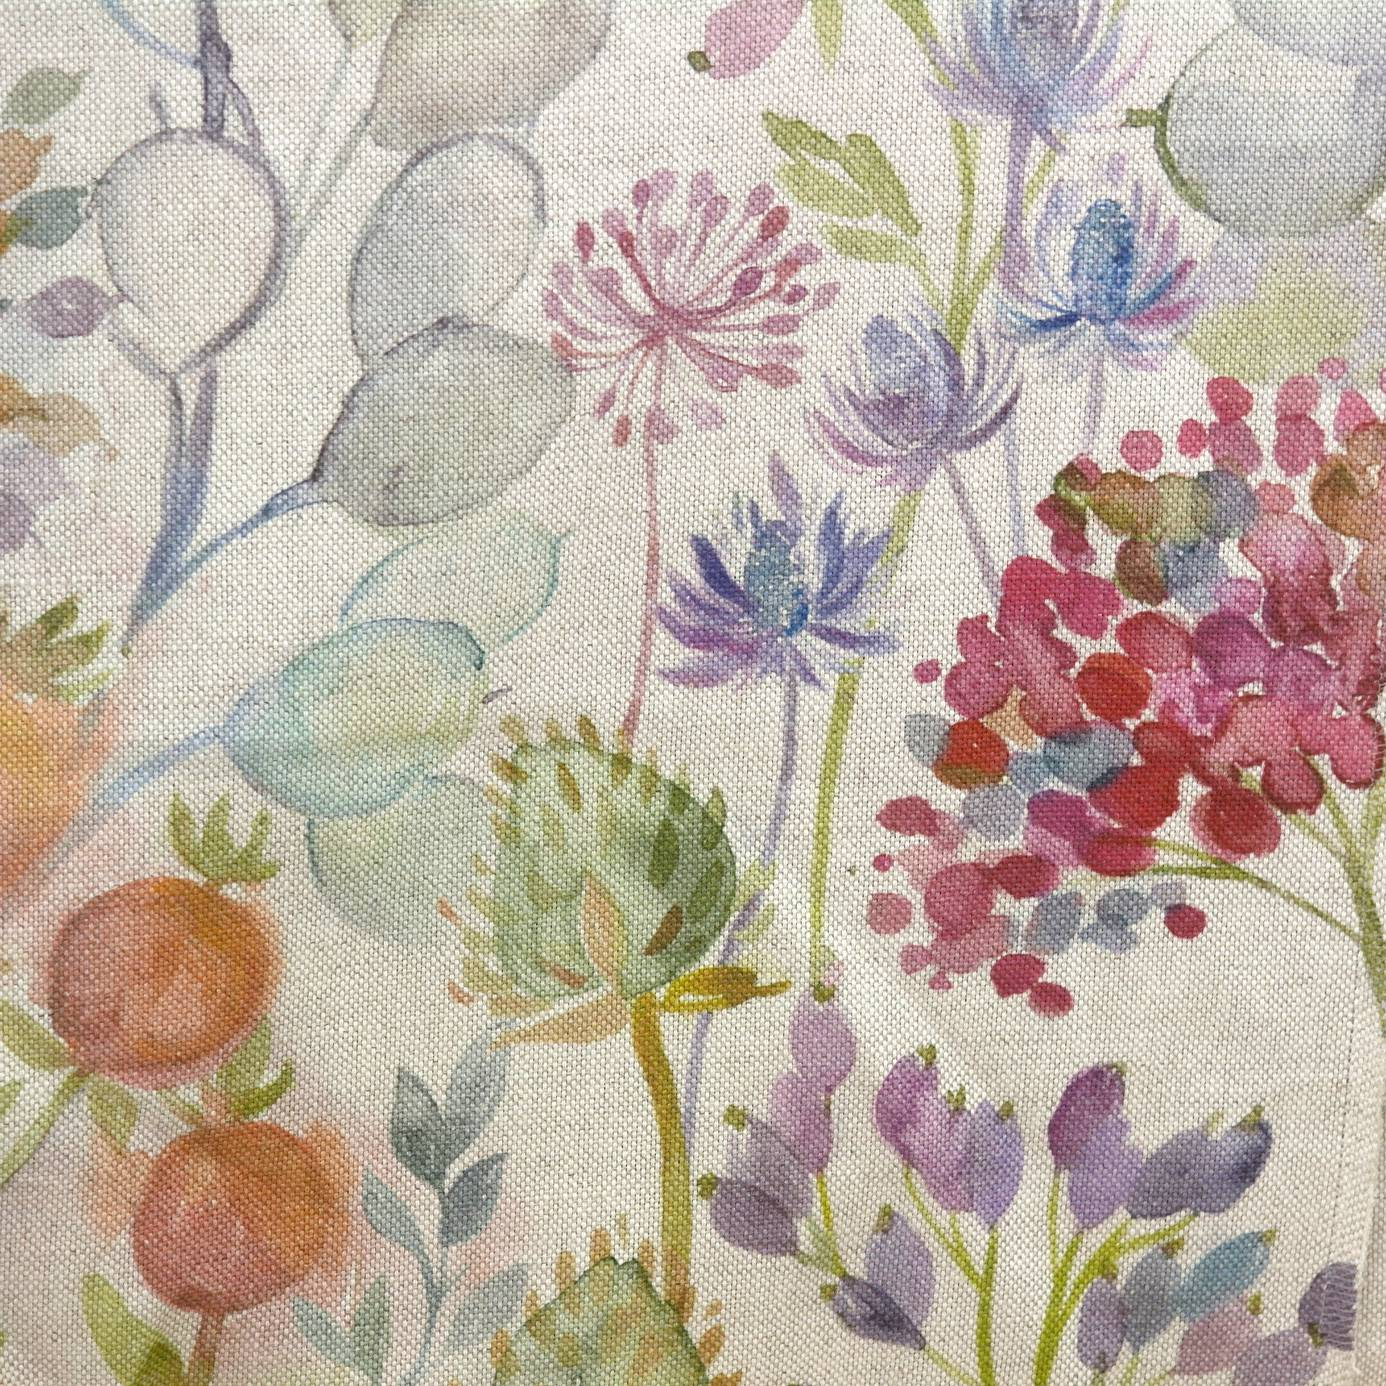 Designers Guild Cushions Uk picture on Designers Guild Cushions Ukvoyhedgerowlinen_hedgerow_fabric_linen_voyage_lythmore_fabrics_collection with Designers Guild Cushions Uk, sofa ebcc3793b3579e8b23a8b659327b3d52